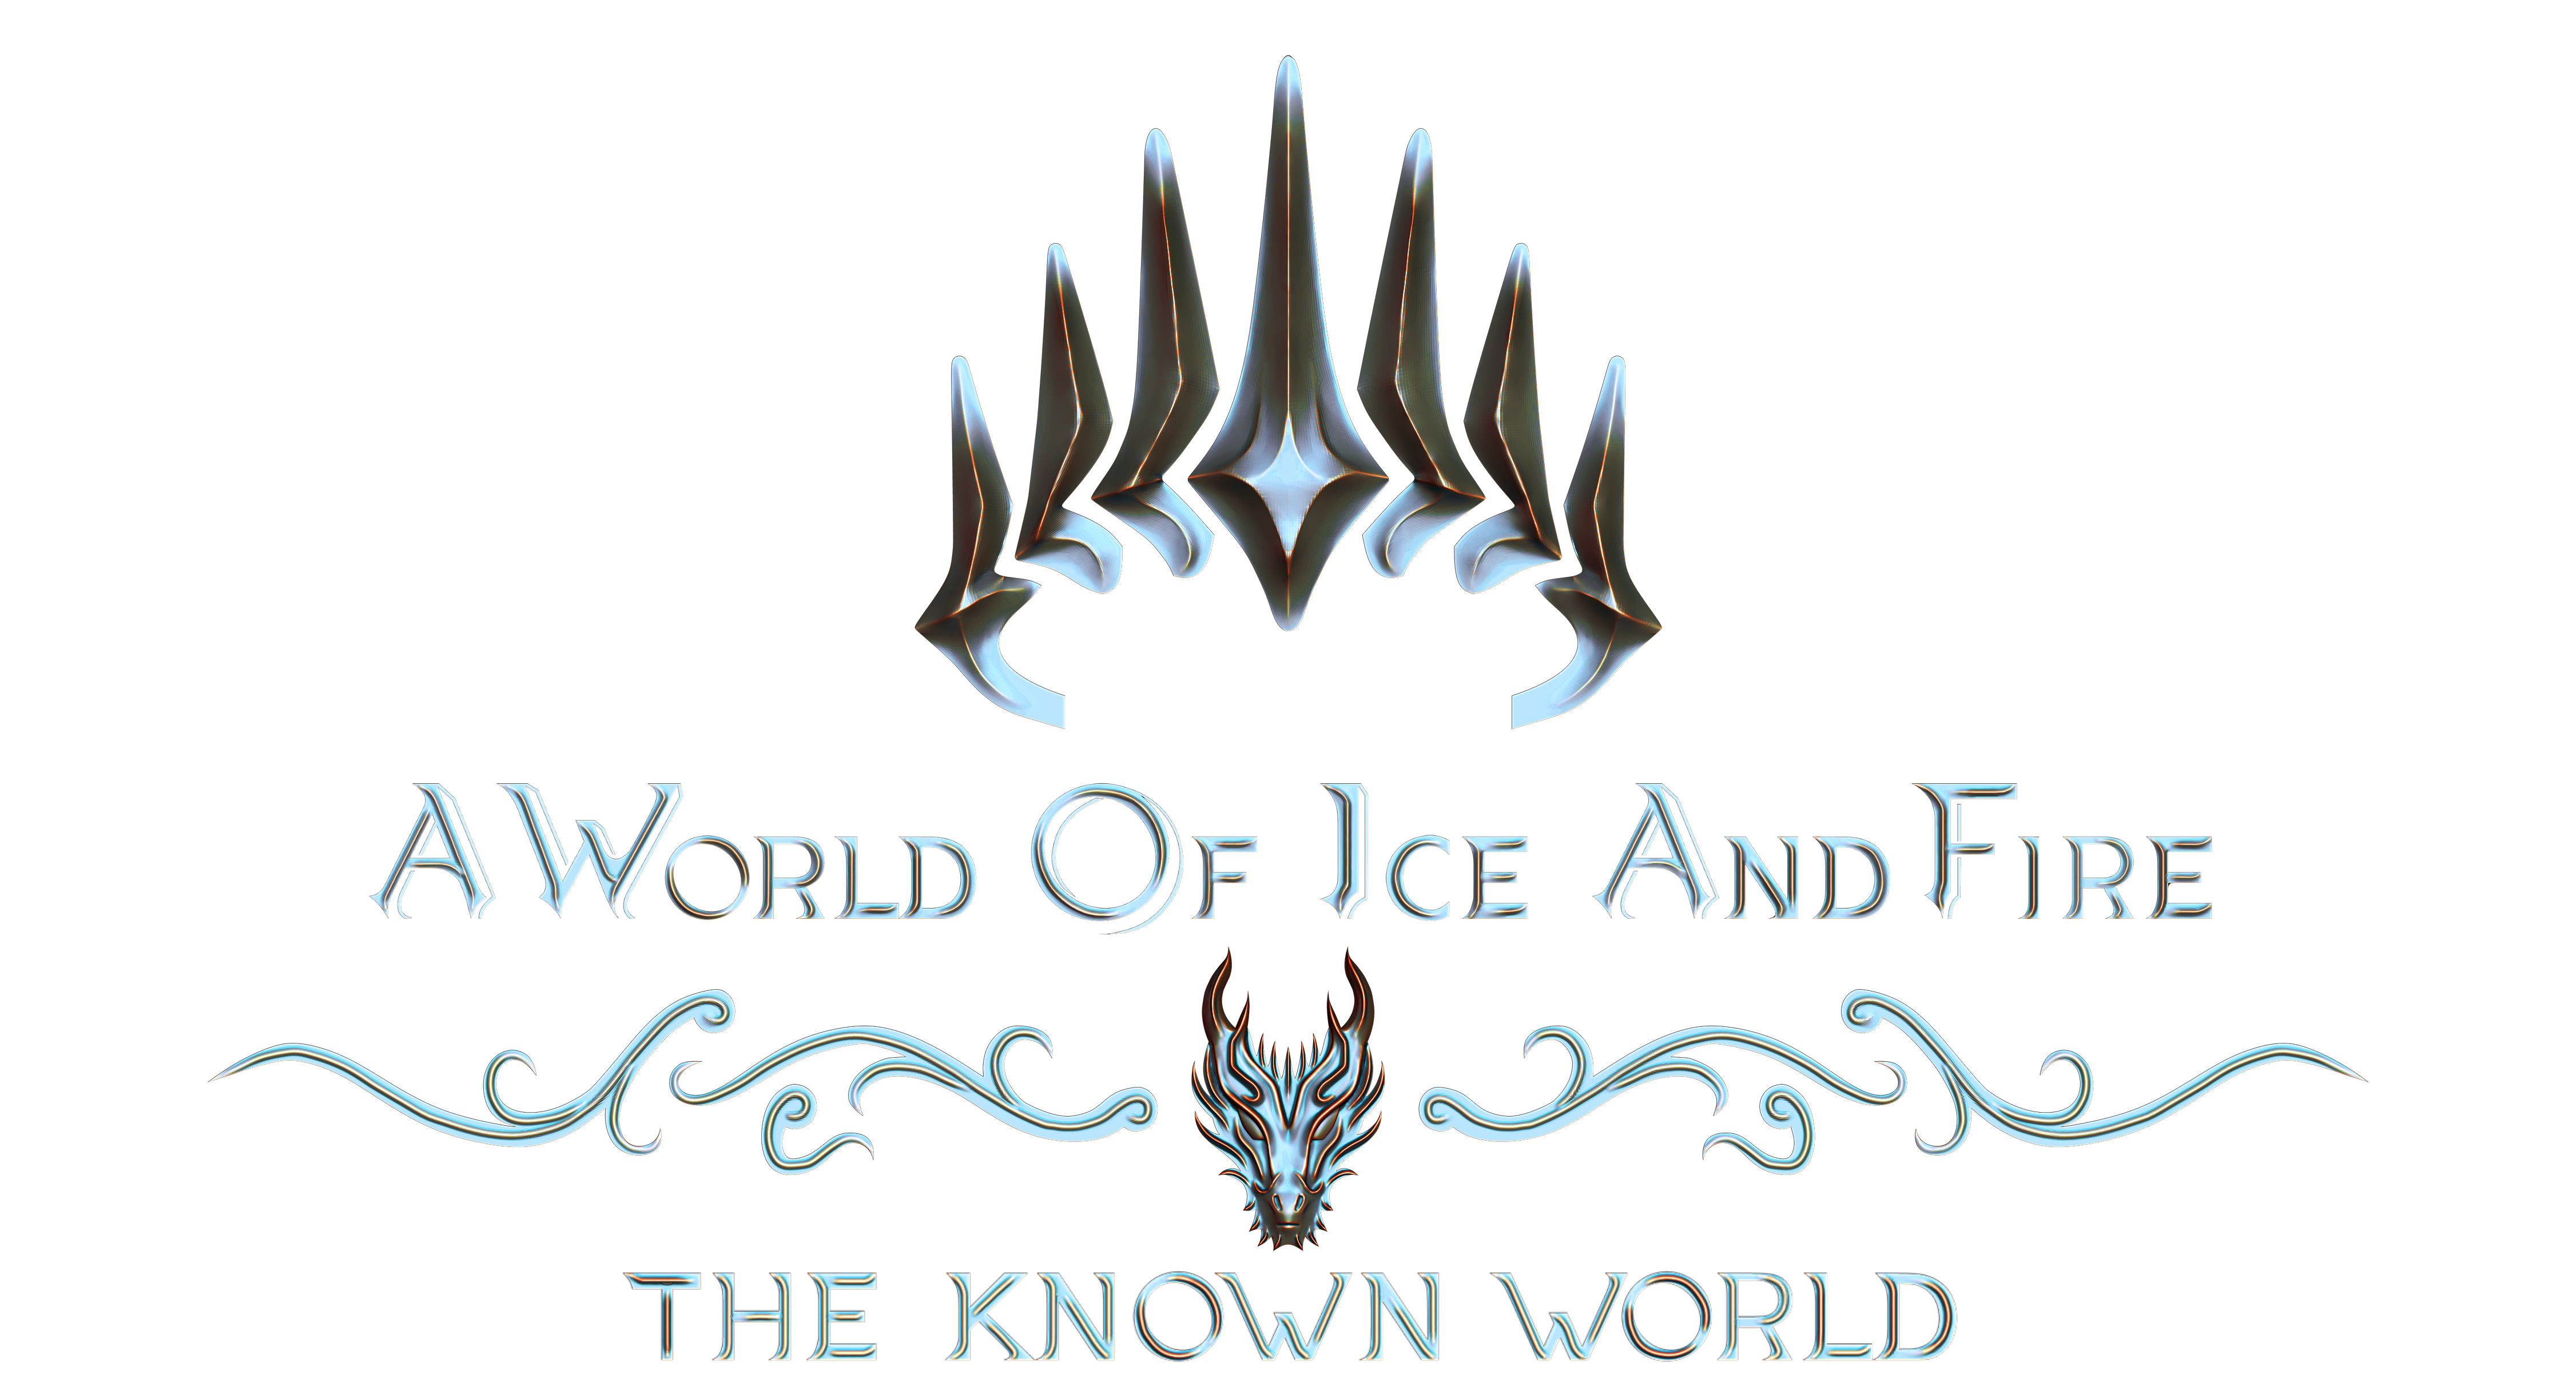 AWOIAF_logo_Full_Bannerlord2.png